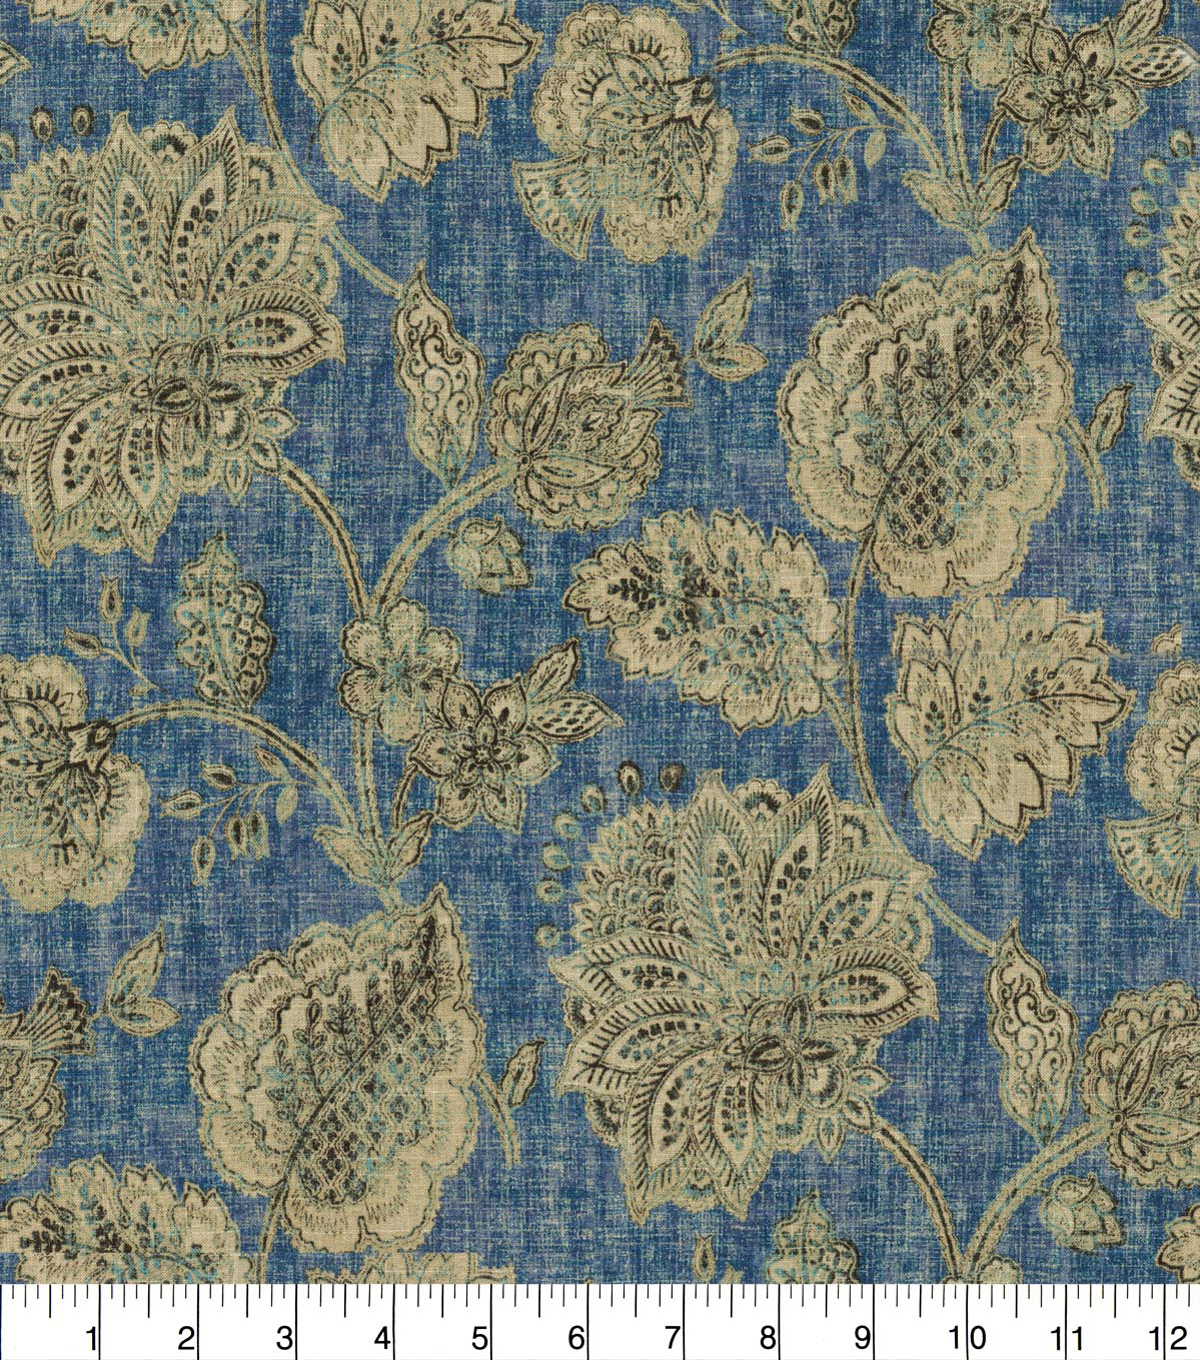 Home Decor 8\u0022x8\u0022 Fabric Swatch-Tommy Bahama Tahitian Riptide